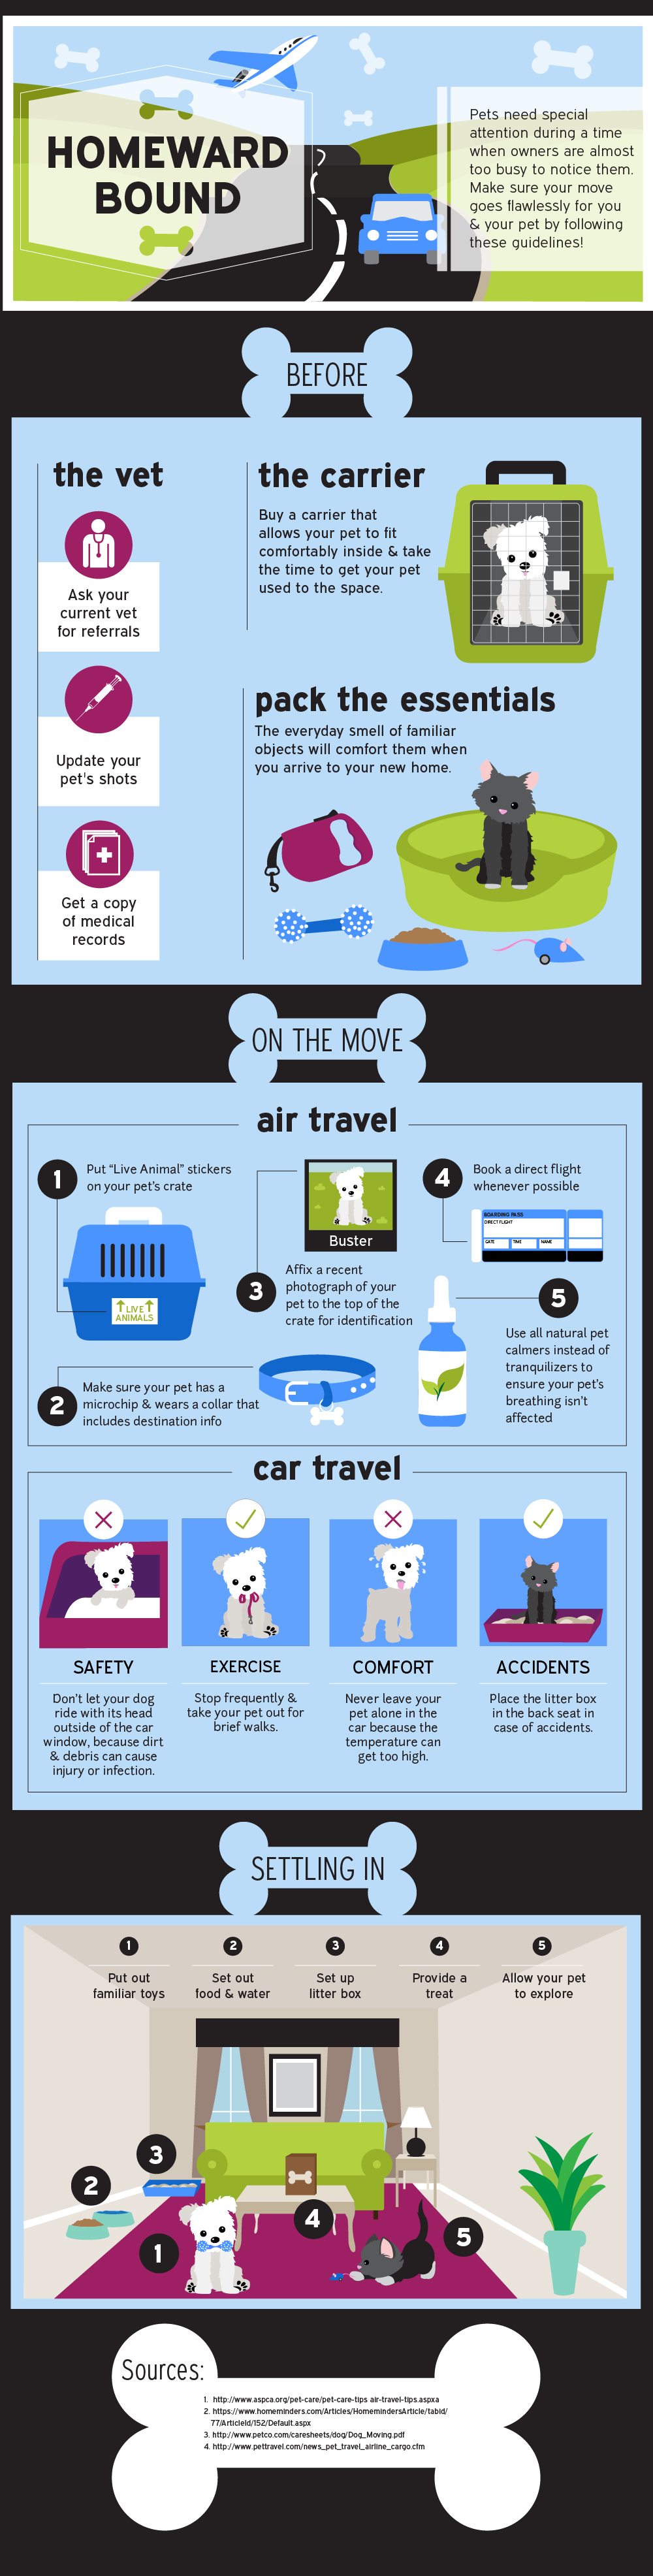 Moving With Pets Infographic by Korinne Ghafari at